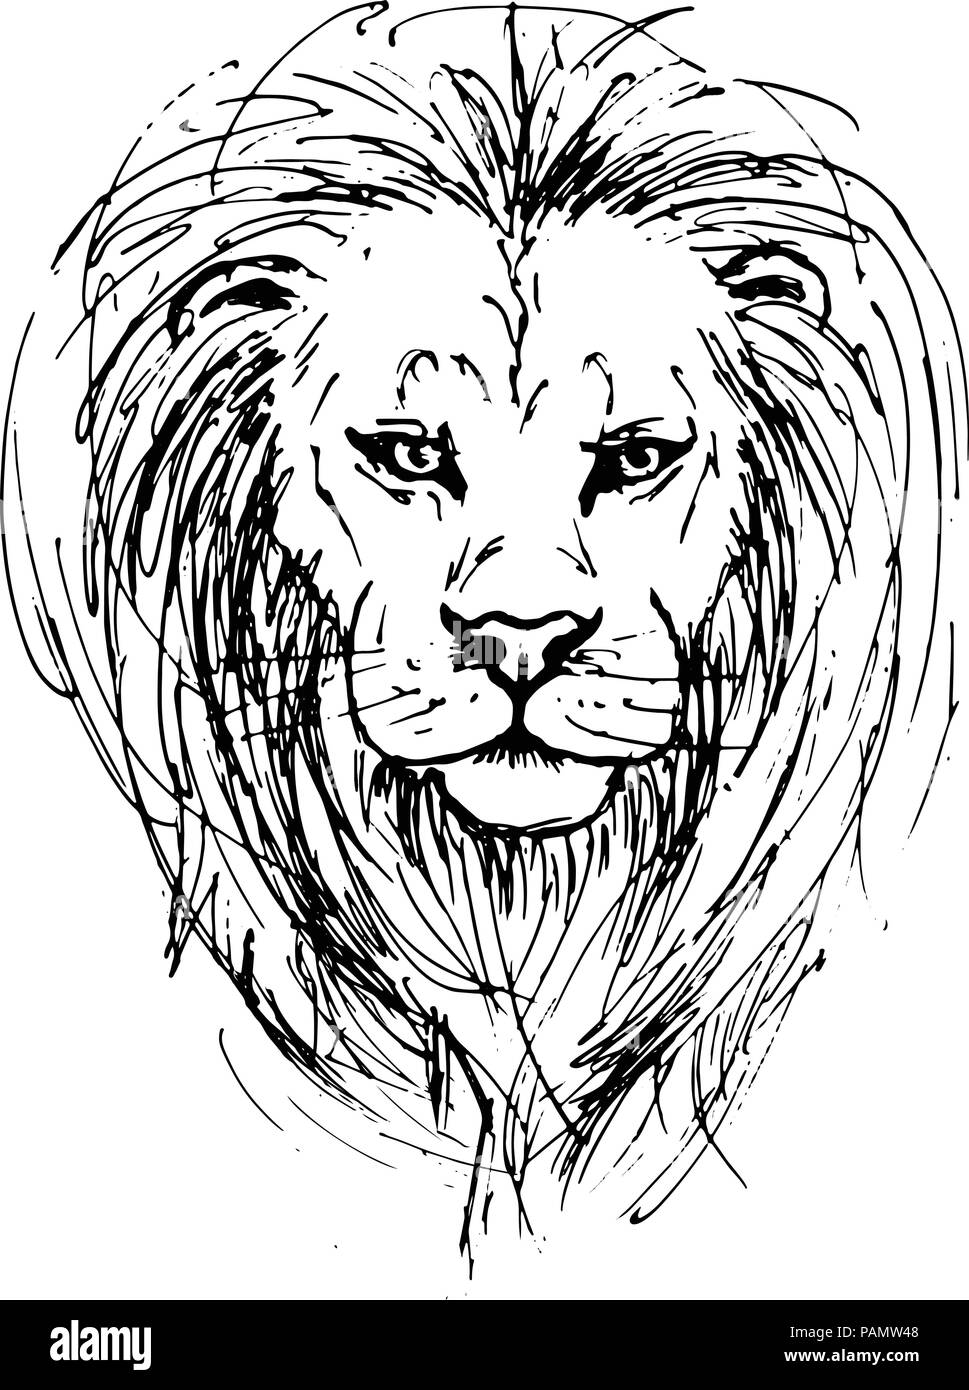 Outline Lion Head Animal Vector High Resolution Stock Photography And Images Alamy Free lion vector on star background to create africa art, danger, aggression, horoscope, jungle, safari, predator, powerful animal, mascot and mythology graphics. https www alamy com sketch by pen of a lion head image213129736 html